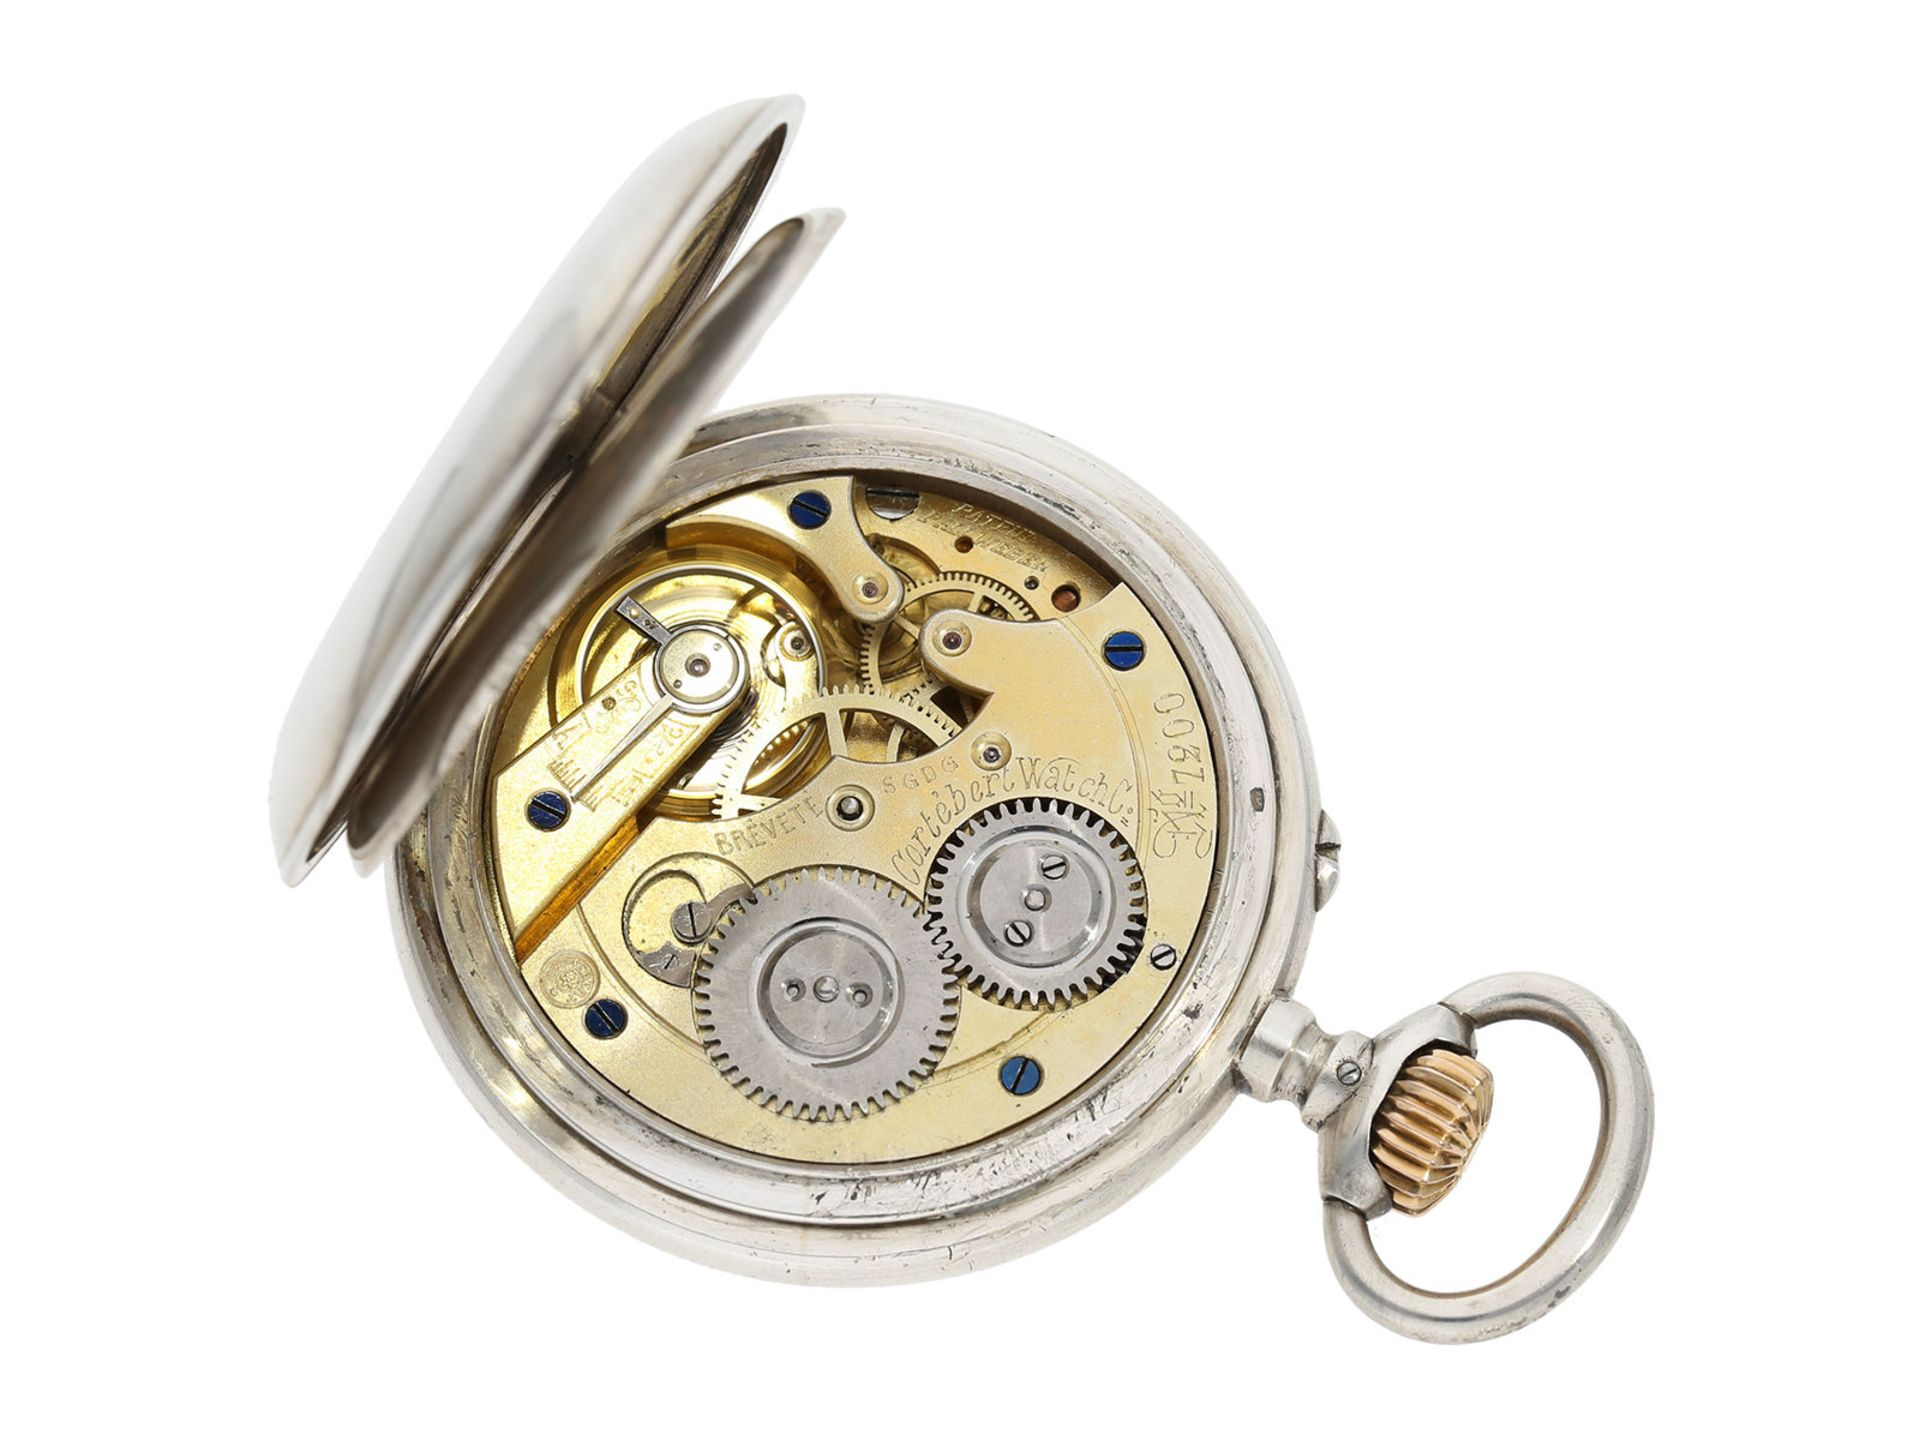 Pocket watch: rare digital pocket watch with jumping hour and jumping minute, Pallweber system, - Bild 2 aus 5